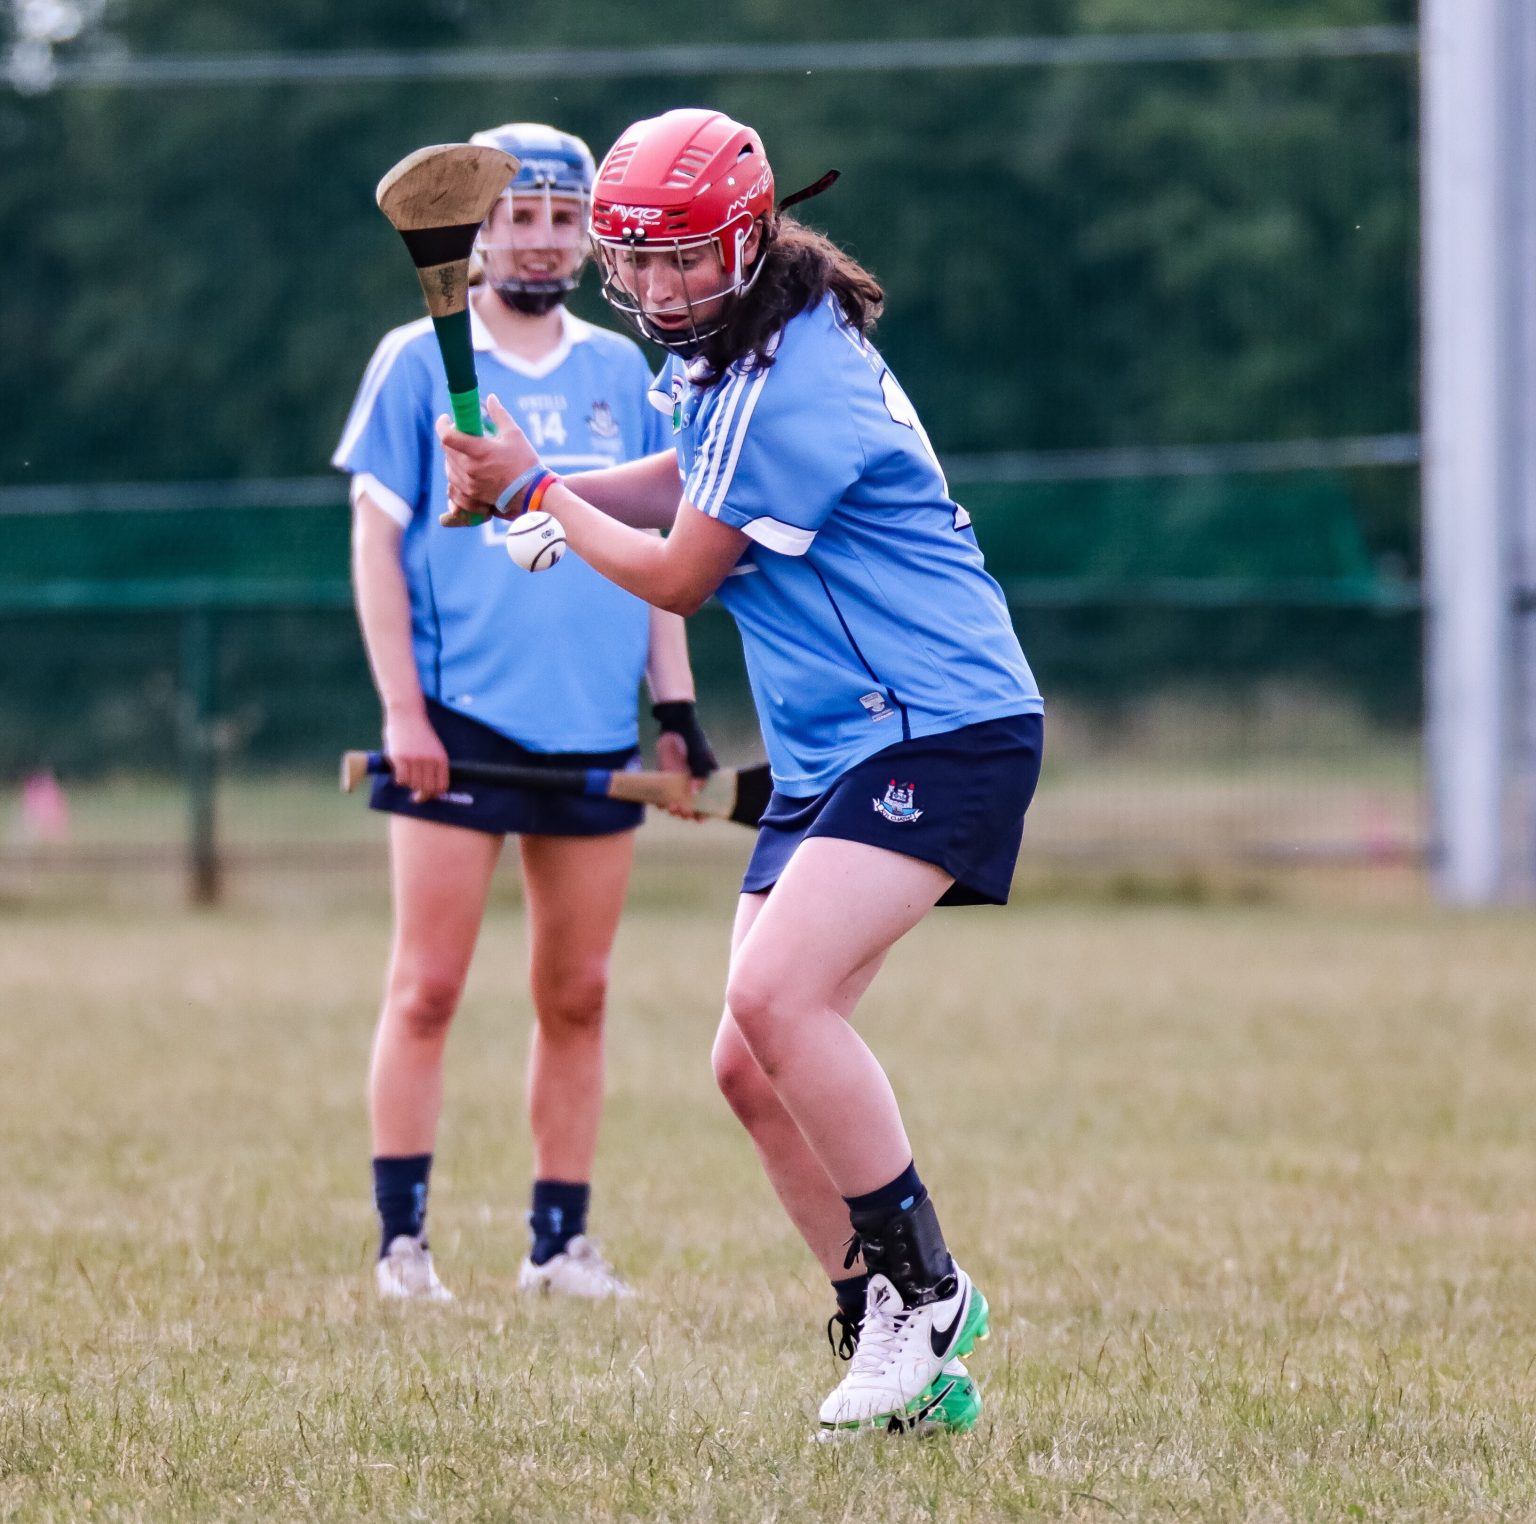 Dublin Camogie Player in a sky blue jersey, navy skort and red helmet about to strike the ball with her hurl during a Camogie championship game